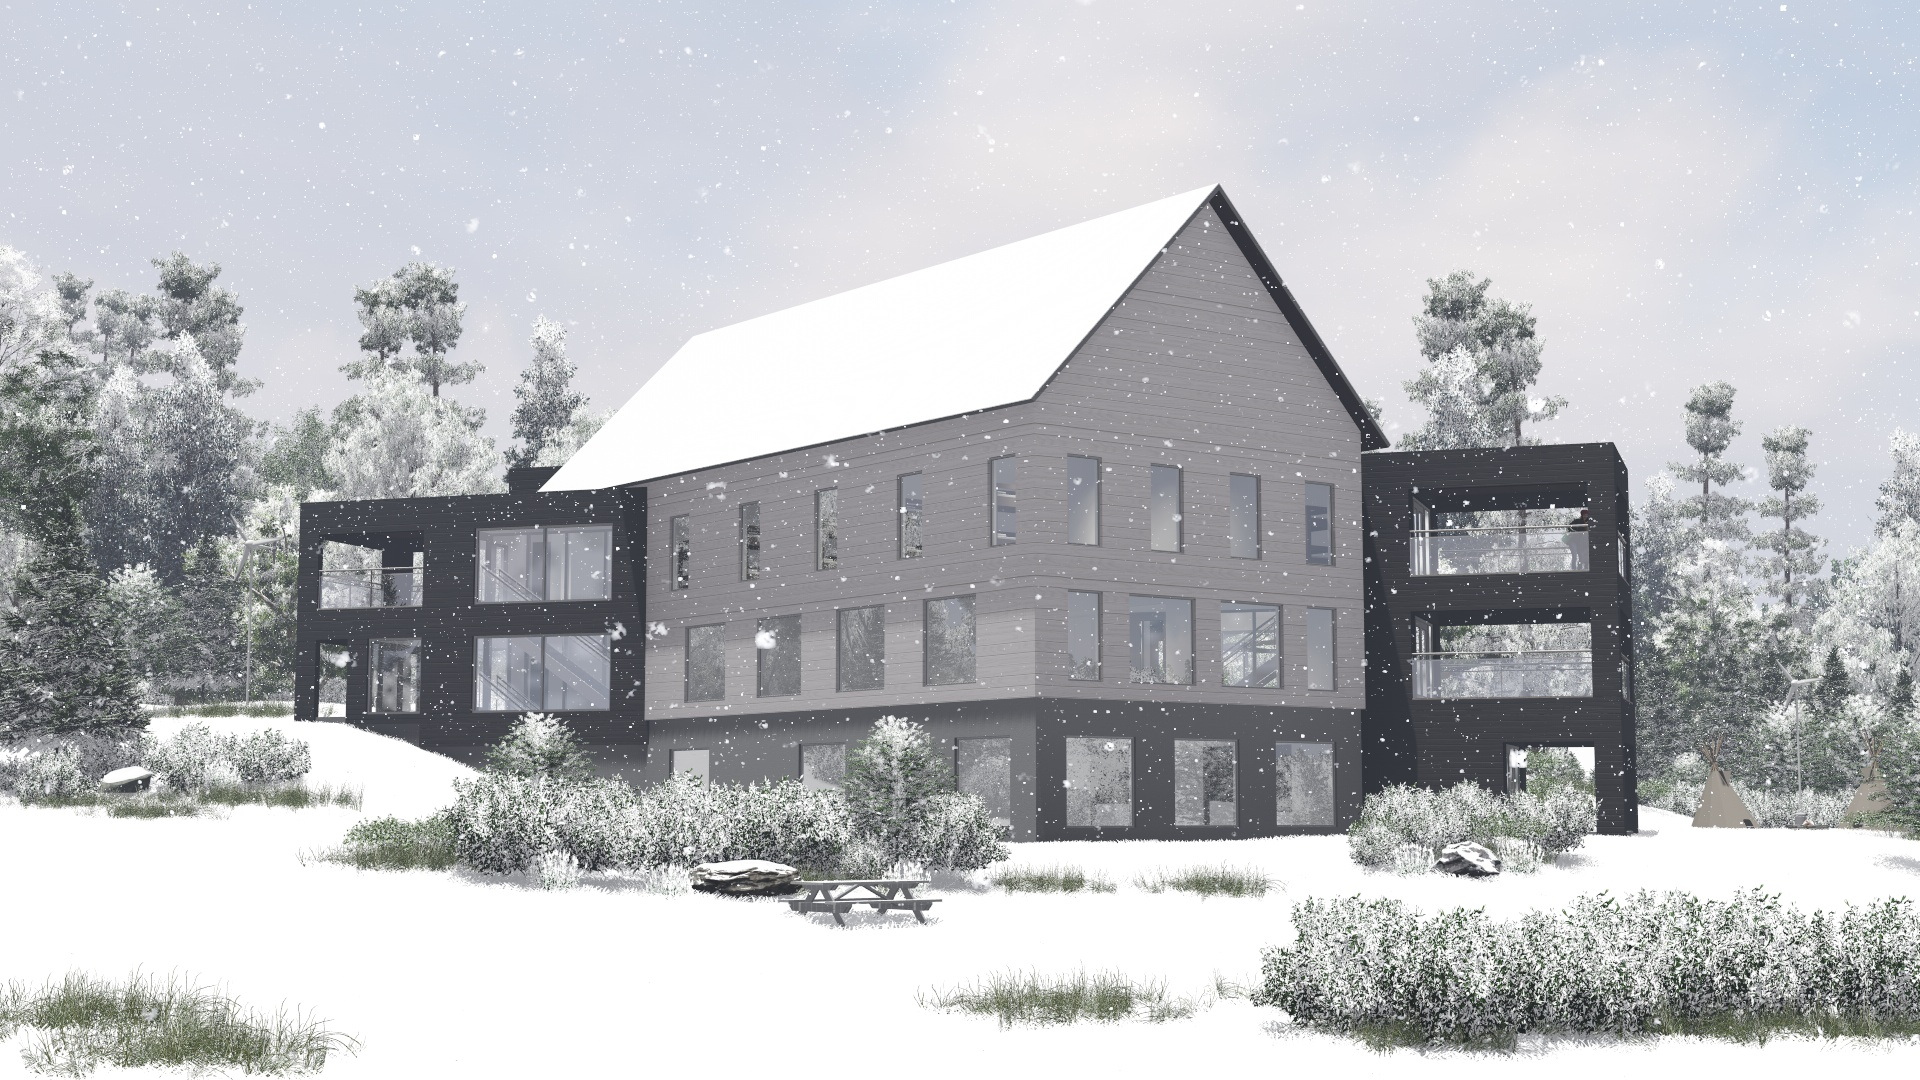 Kimbercote Accommodations Building - 001D - with snow 4.jpg